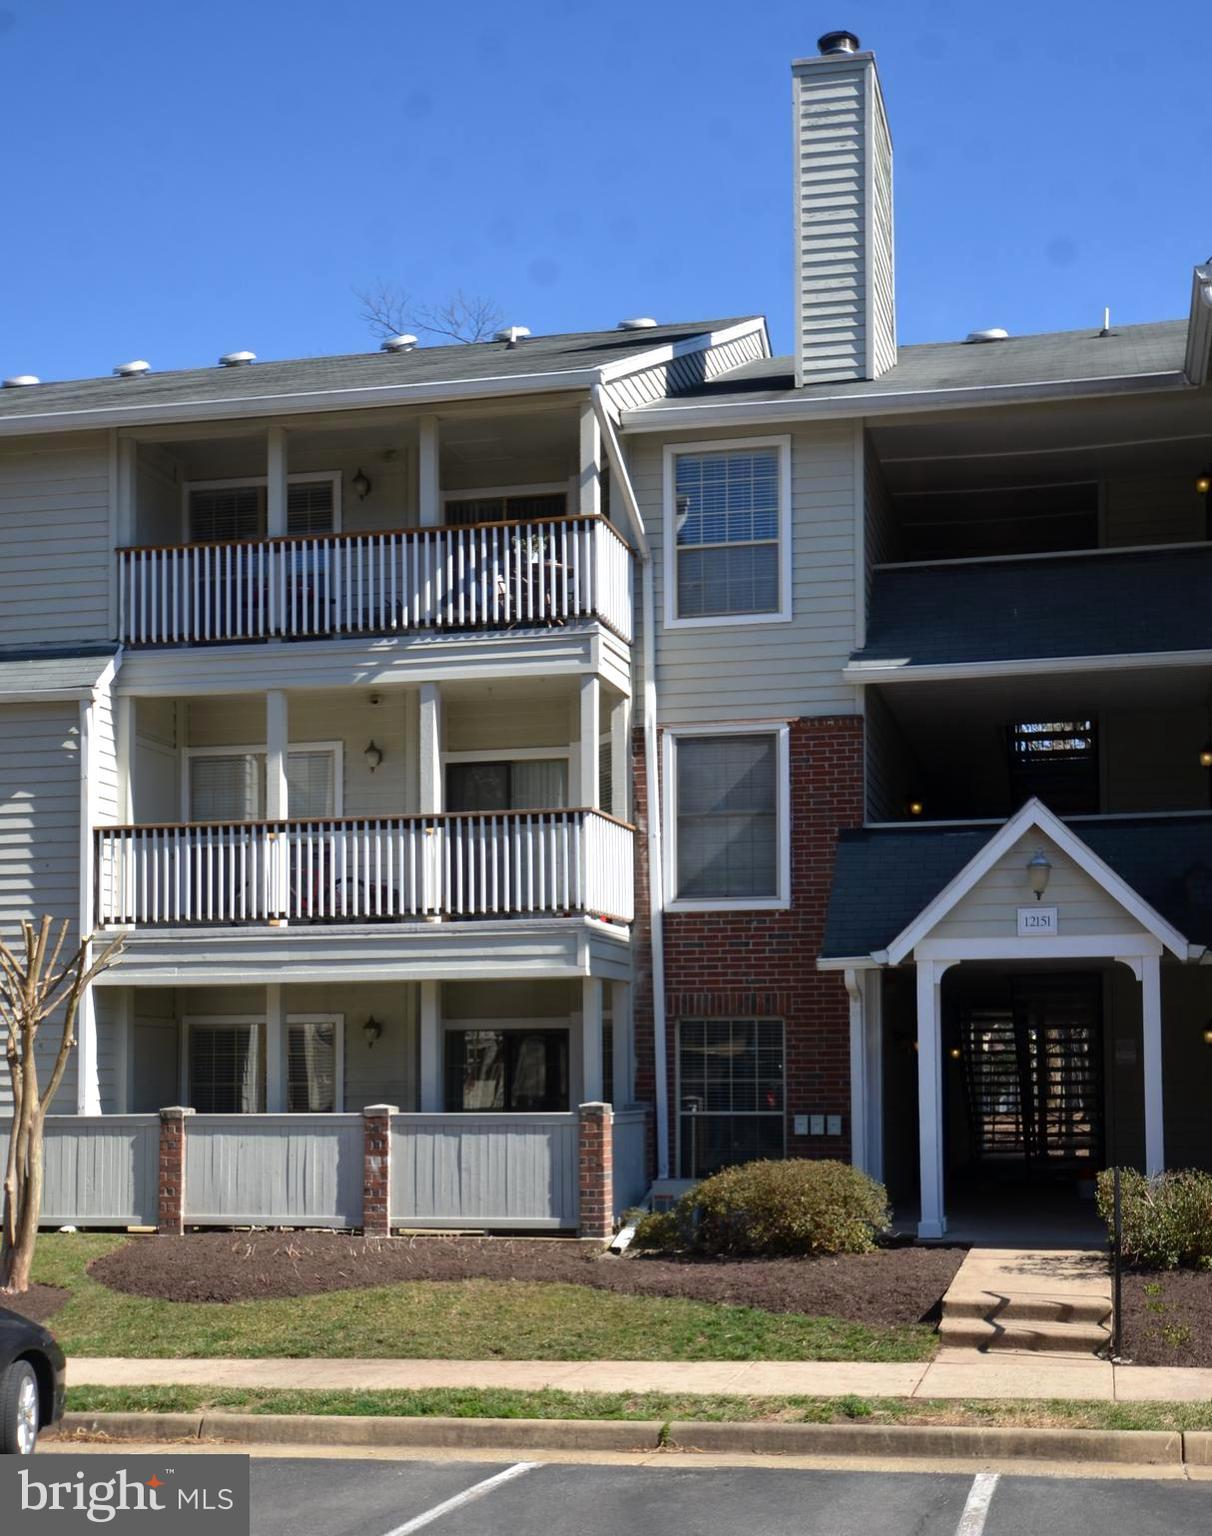 Beautiful, move-in ready condo in upscale golf community with top-rated amenities & convenient commuter locale! Area restaurants & shopping abound. New carpet, new headwood floor, new kitchen electric cook range, new washier and dryer. Gourmet kitchen with updated cabinetry. Large Walk Through Closet off Master Bed Room. Built in shelving & desk area with fireplace. Master includes walk-in closet.  Assigned parking close to building and plenty of guest parking. Community features, golf, outdoor pool, fitness & clubhouse is just a short walk away. Close to major routes, 66 & 50. Close to fair lake shopping center and fair lakes mall.